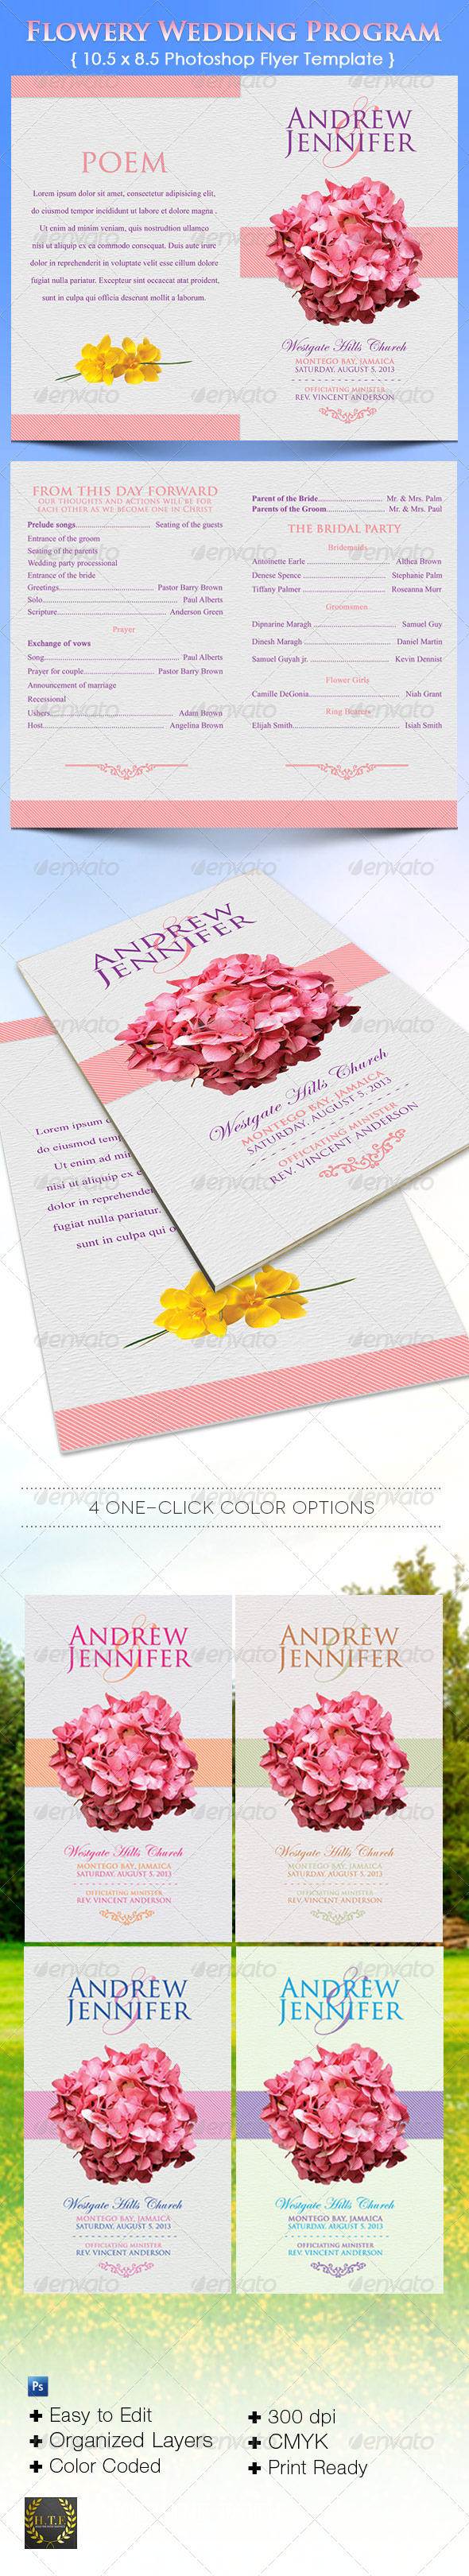 GraphicRiver Flowery Wedding Program 5616311